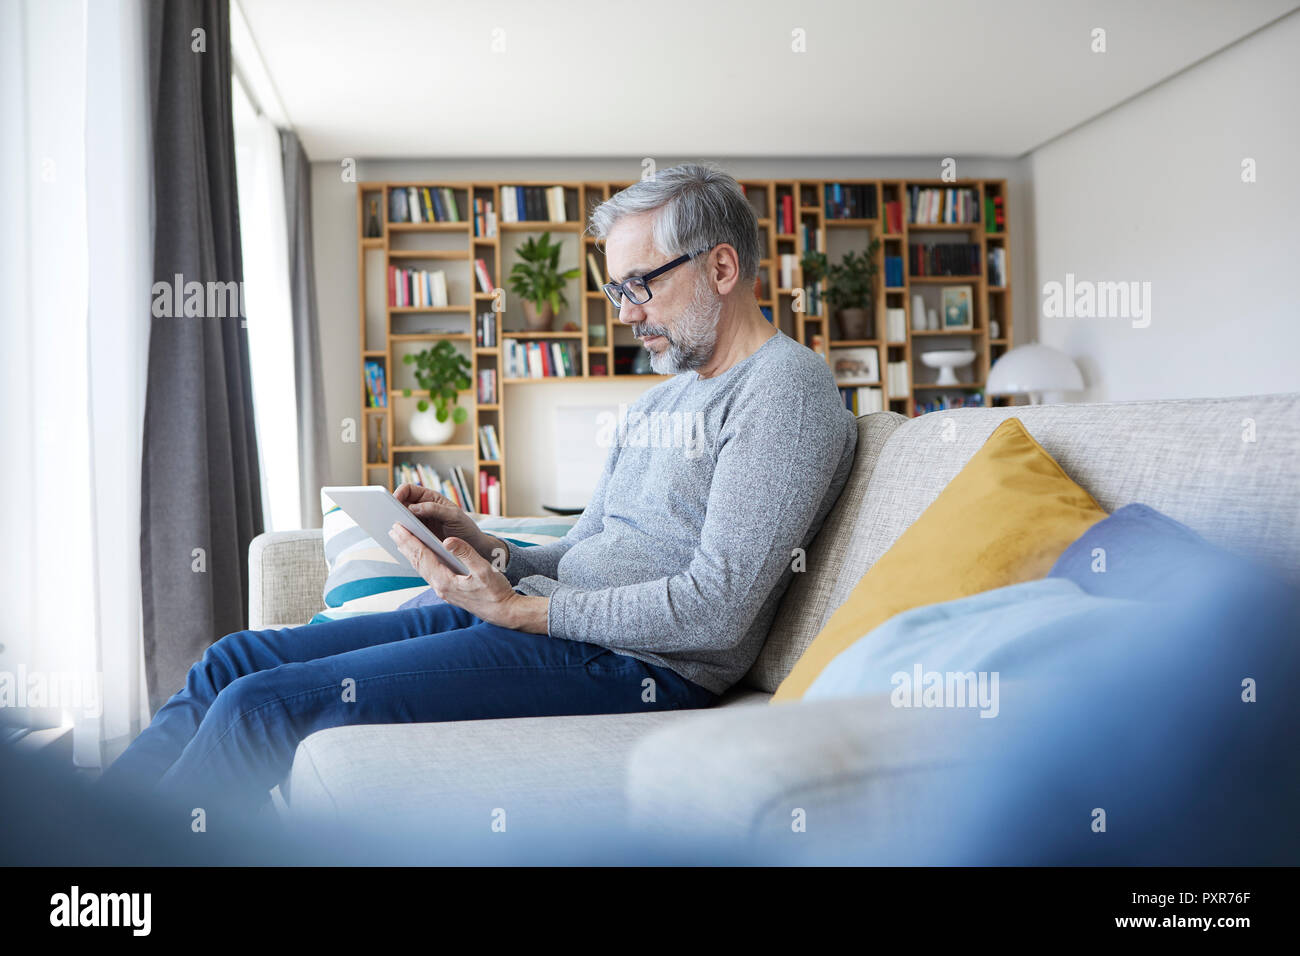 Mature man sitting on couch at his living room using tablet - Stock Image